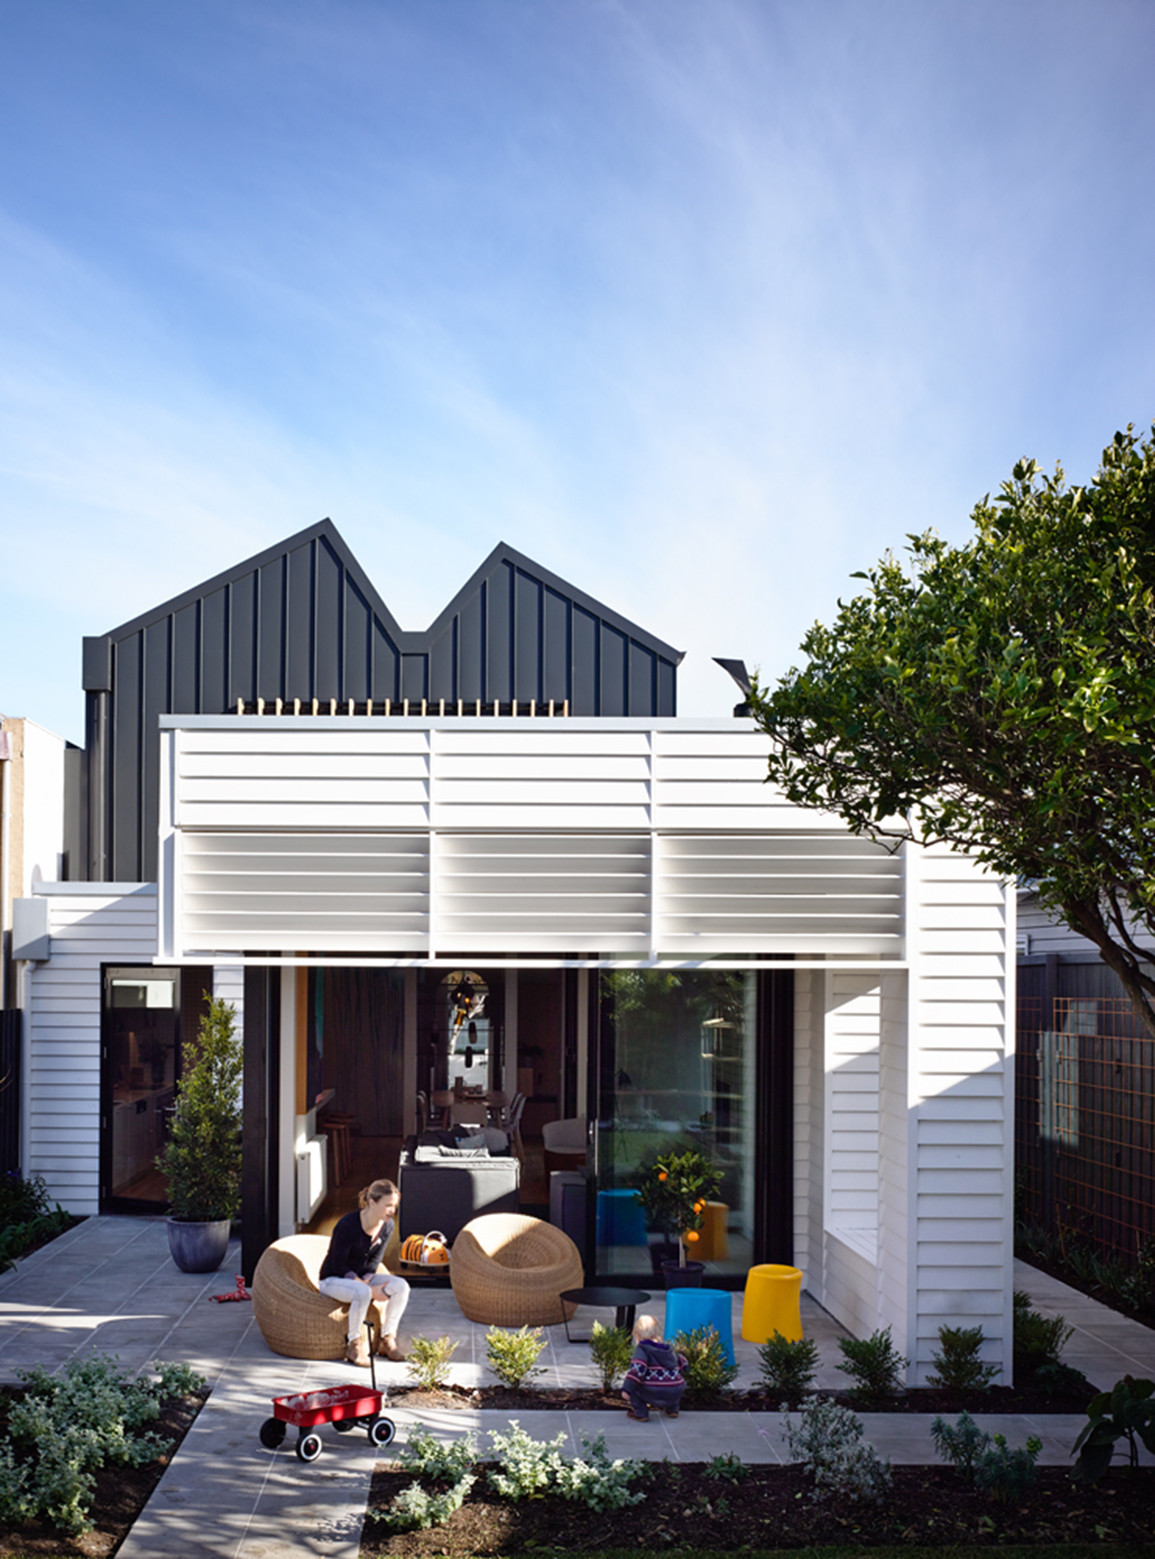 Sandringham house techne architecture interior design - Interior home design for small houses ...